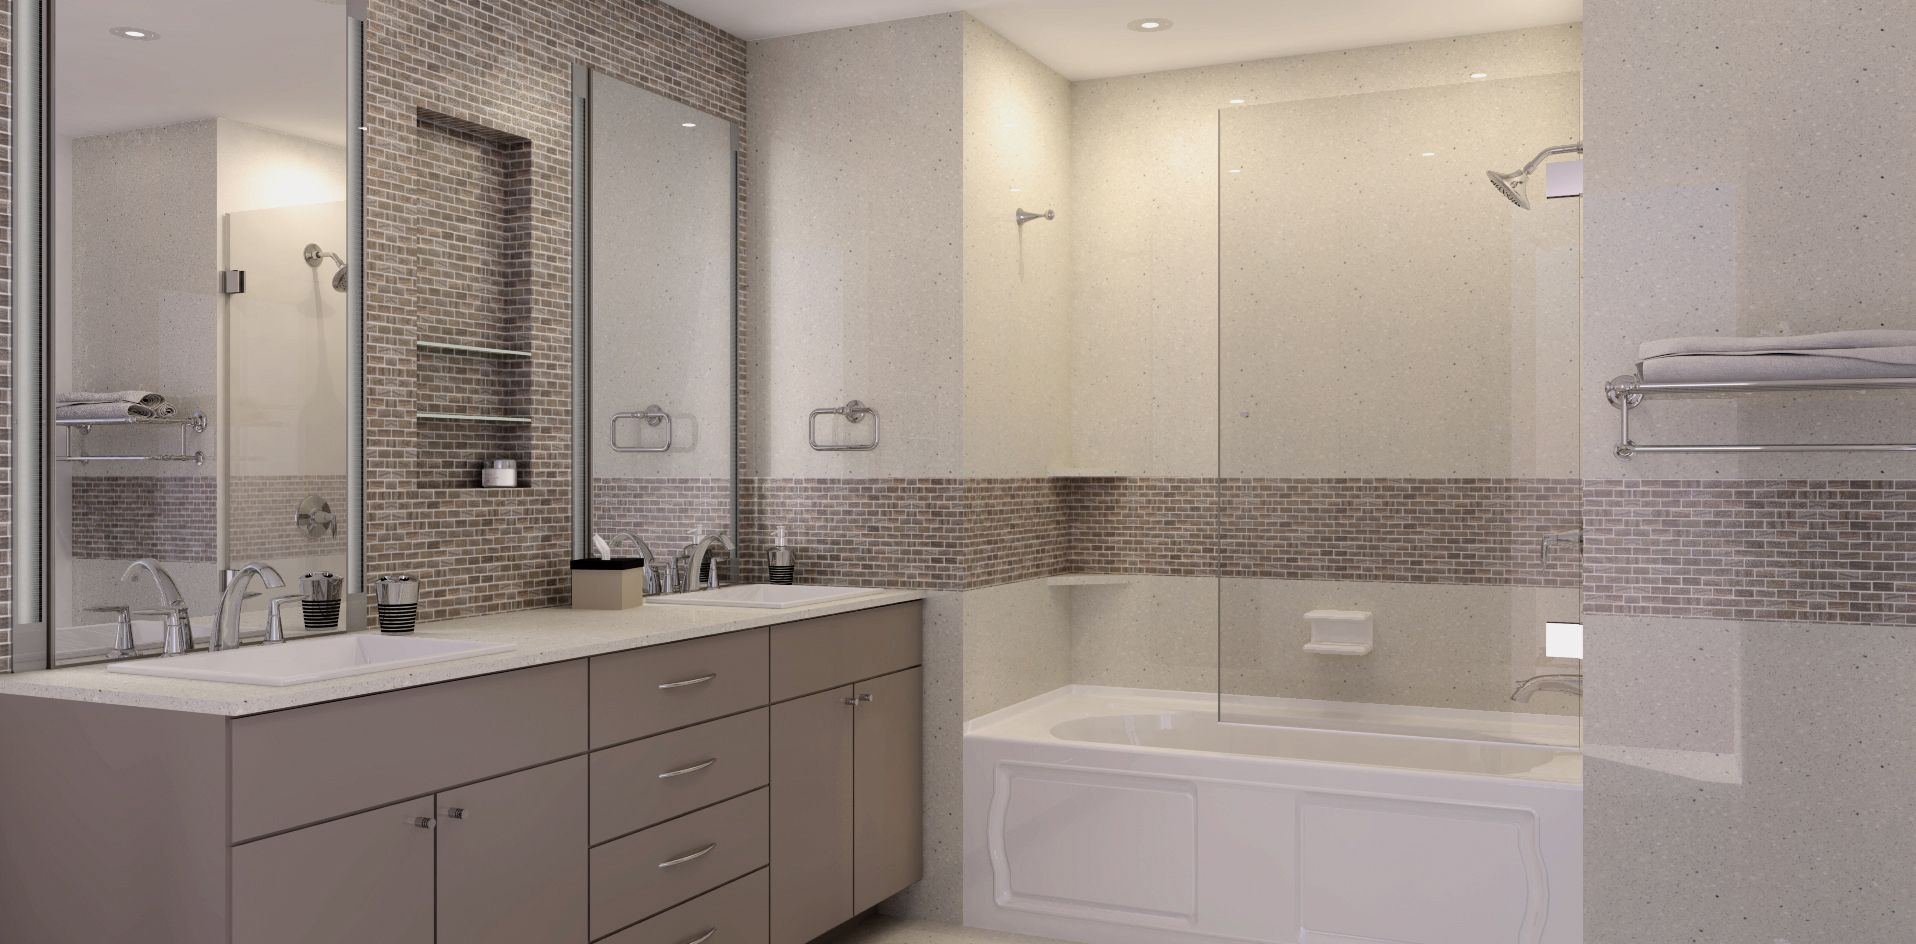 Neutral Colors Are The Perfect Backdrop For Your Bathroom Design